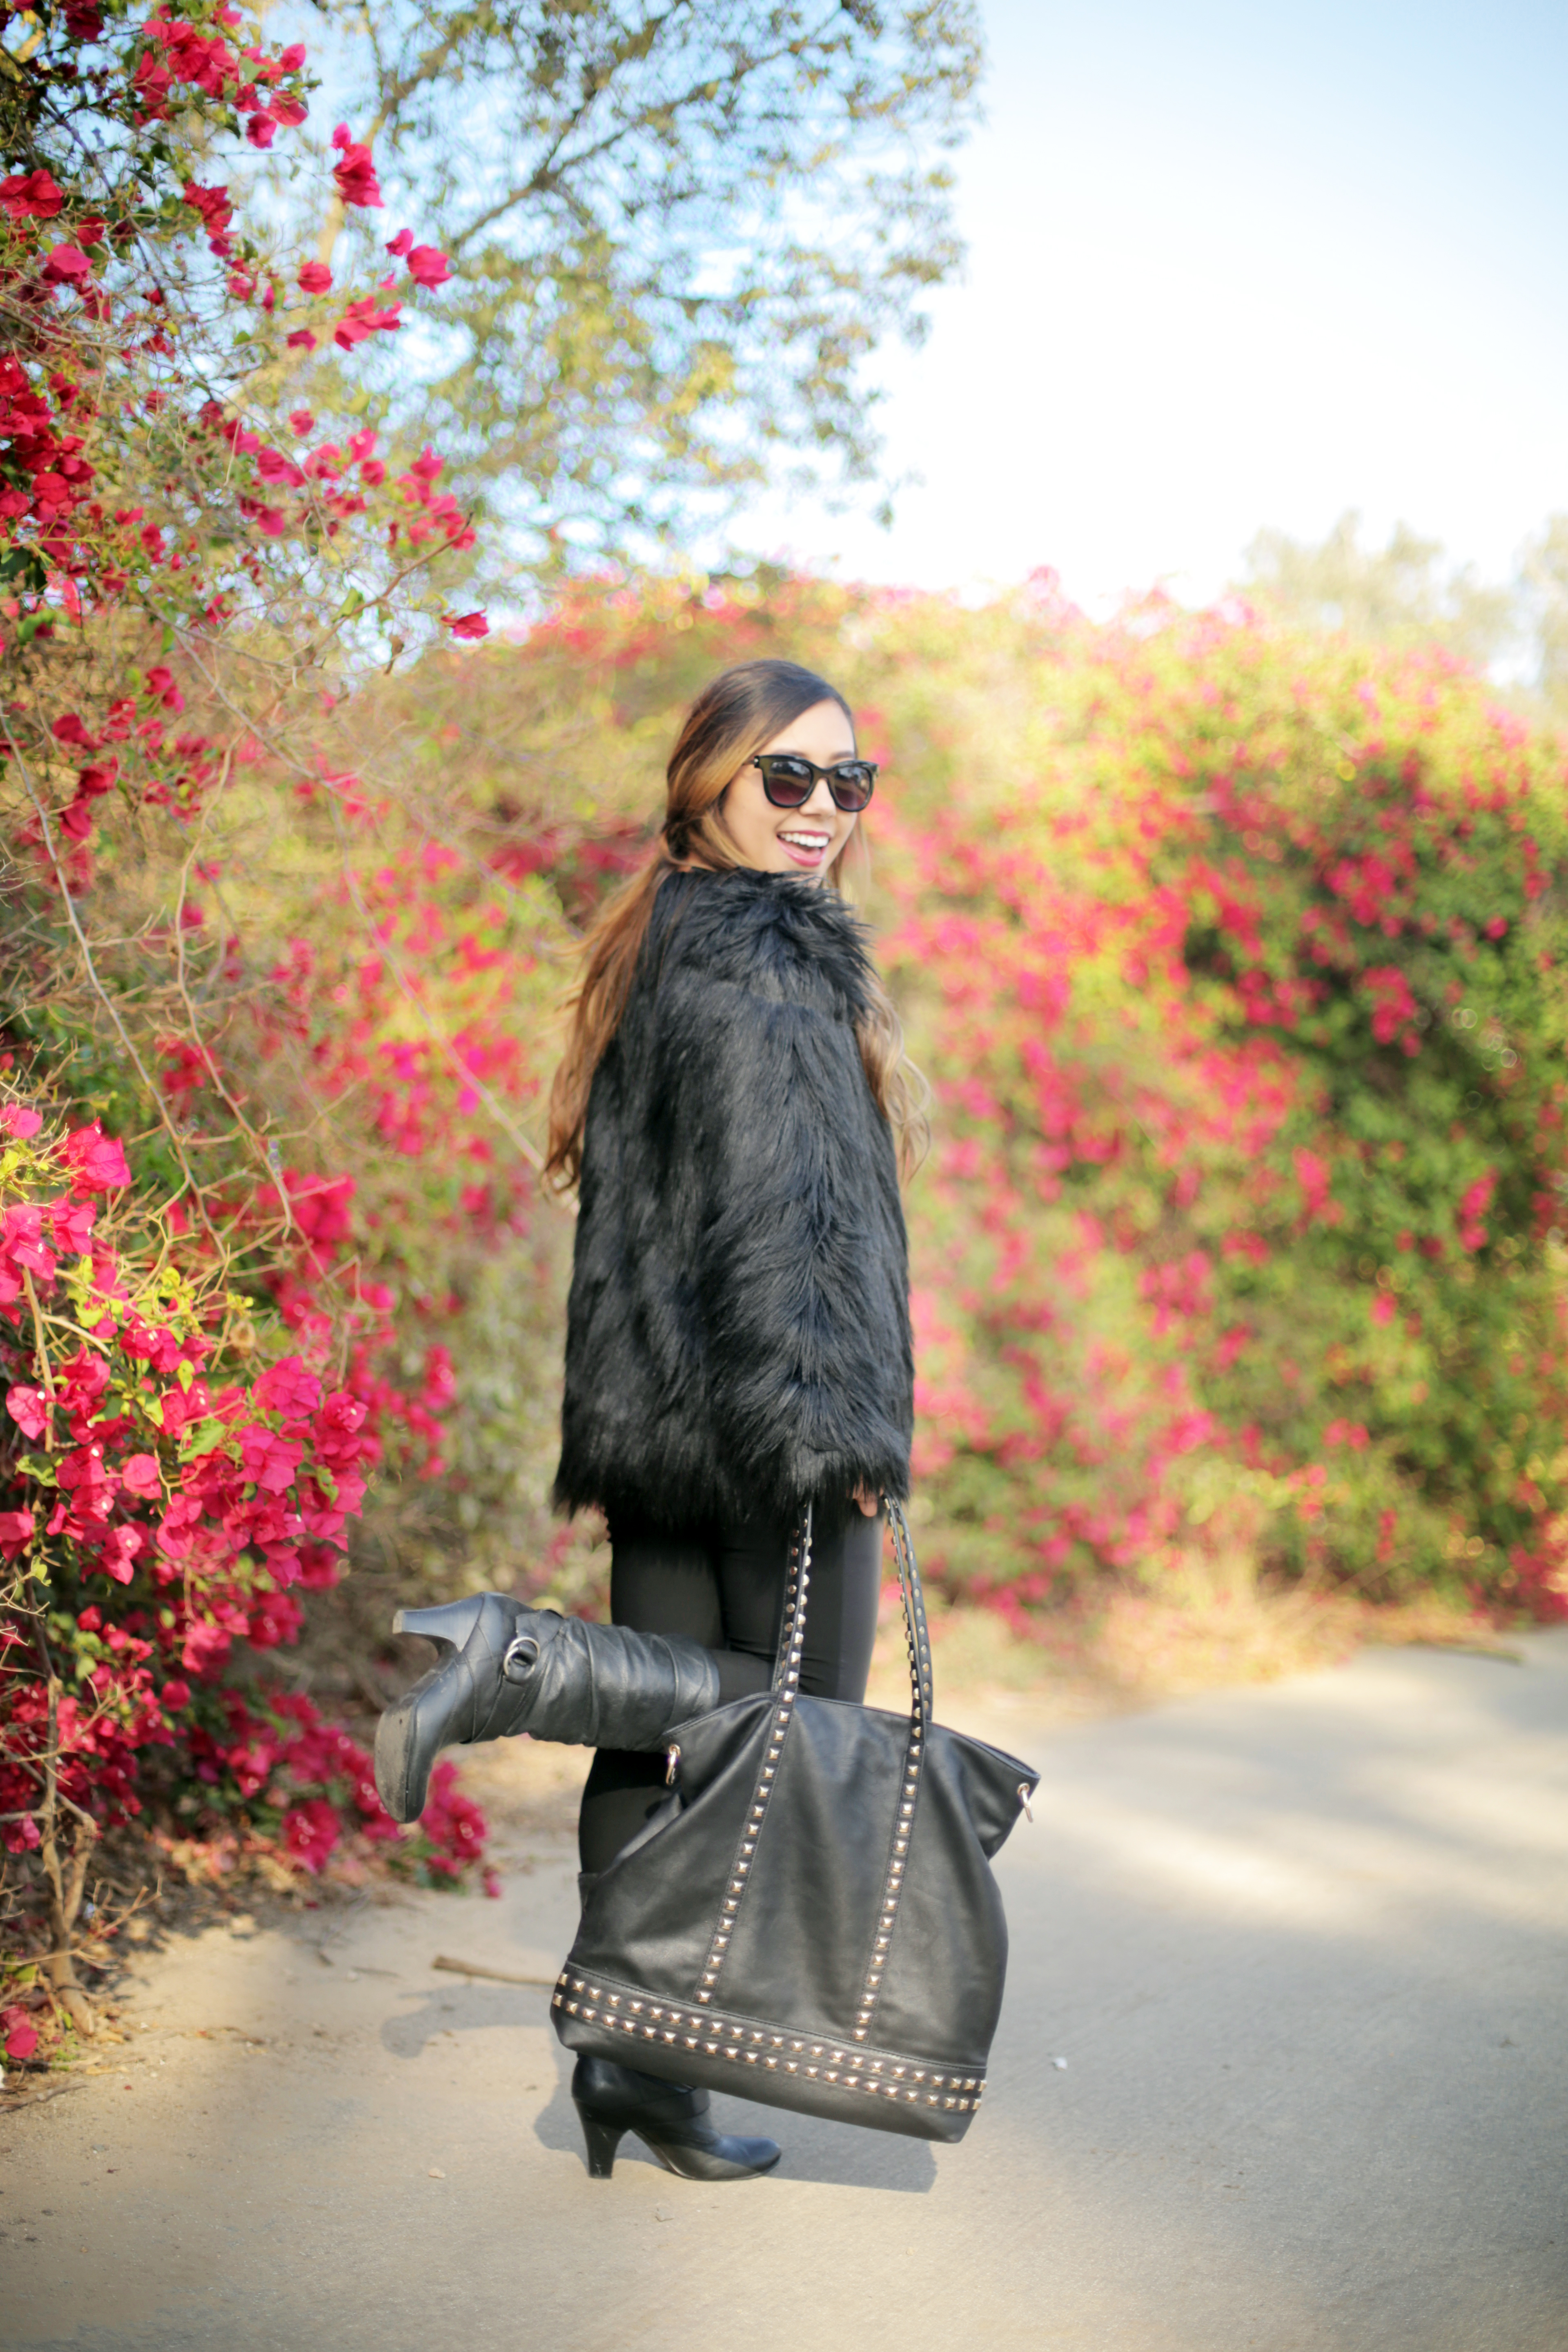 Lookbook Store Faux Fur Coat on Ciera Chang from WorldWideStylista